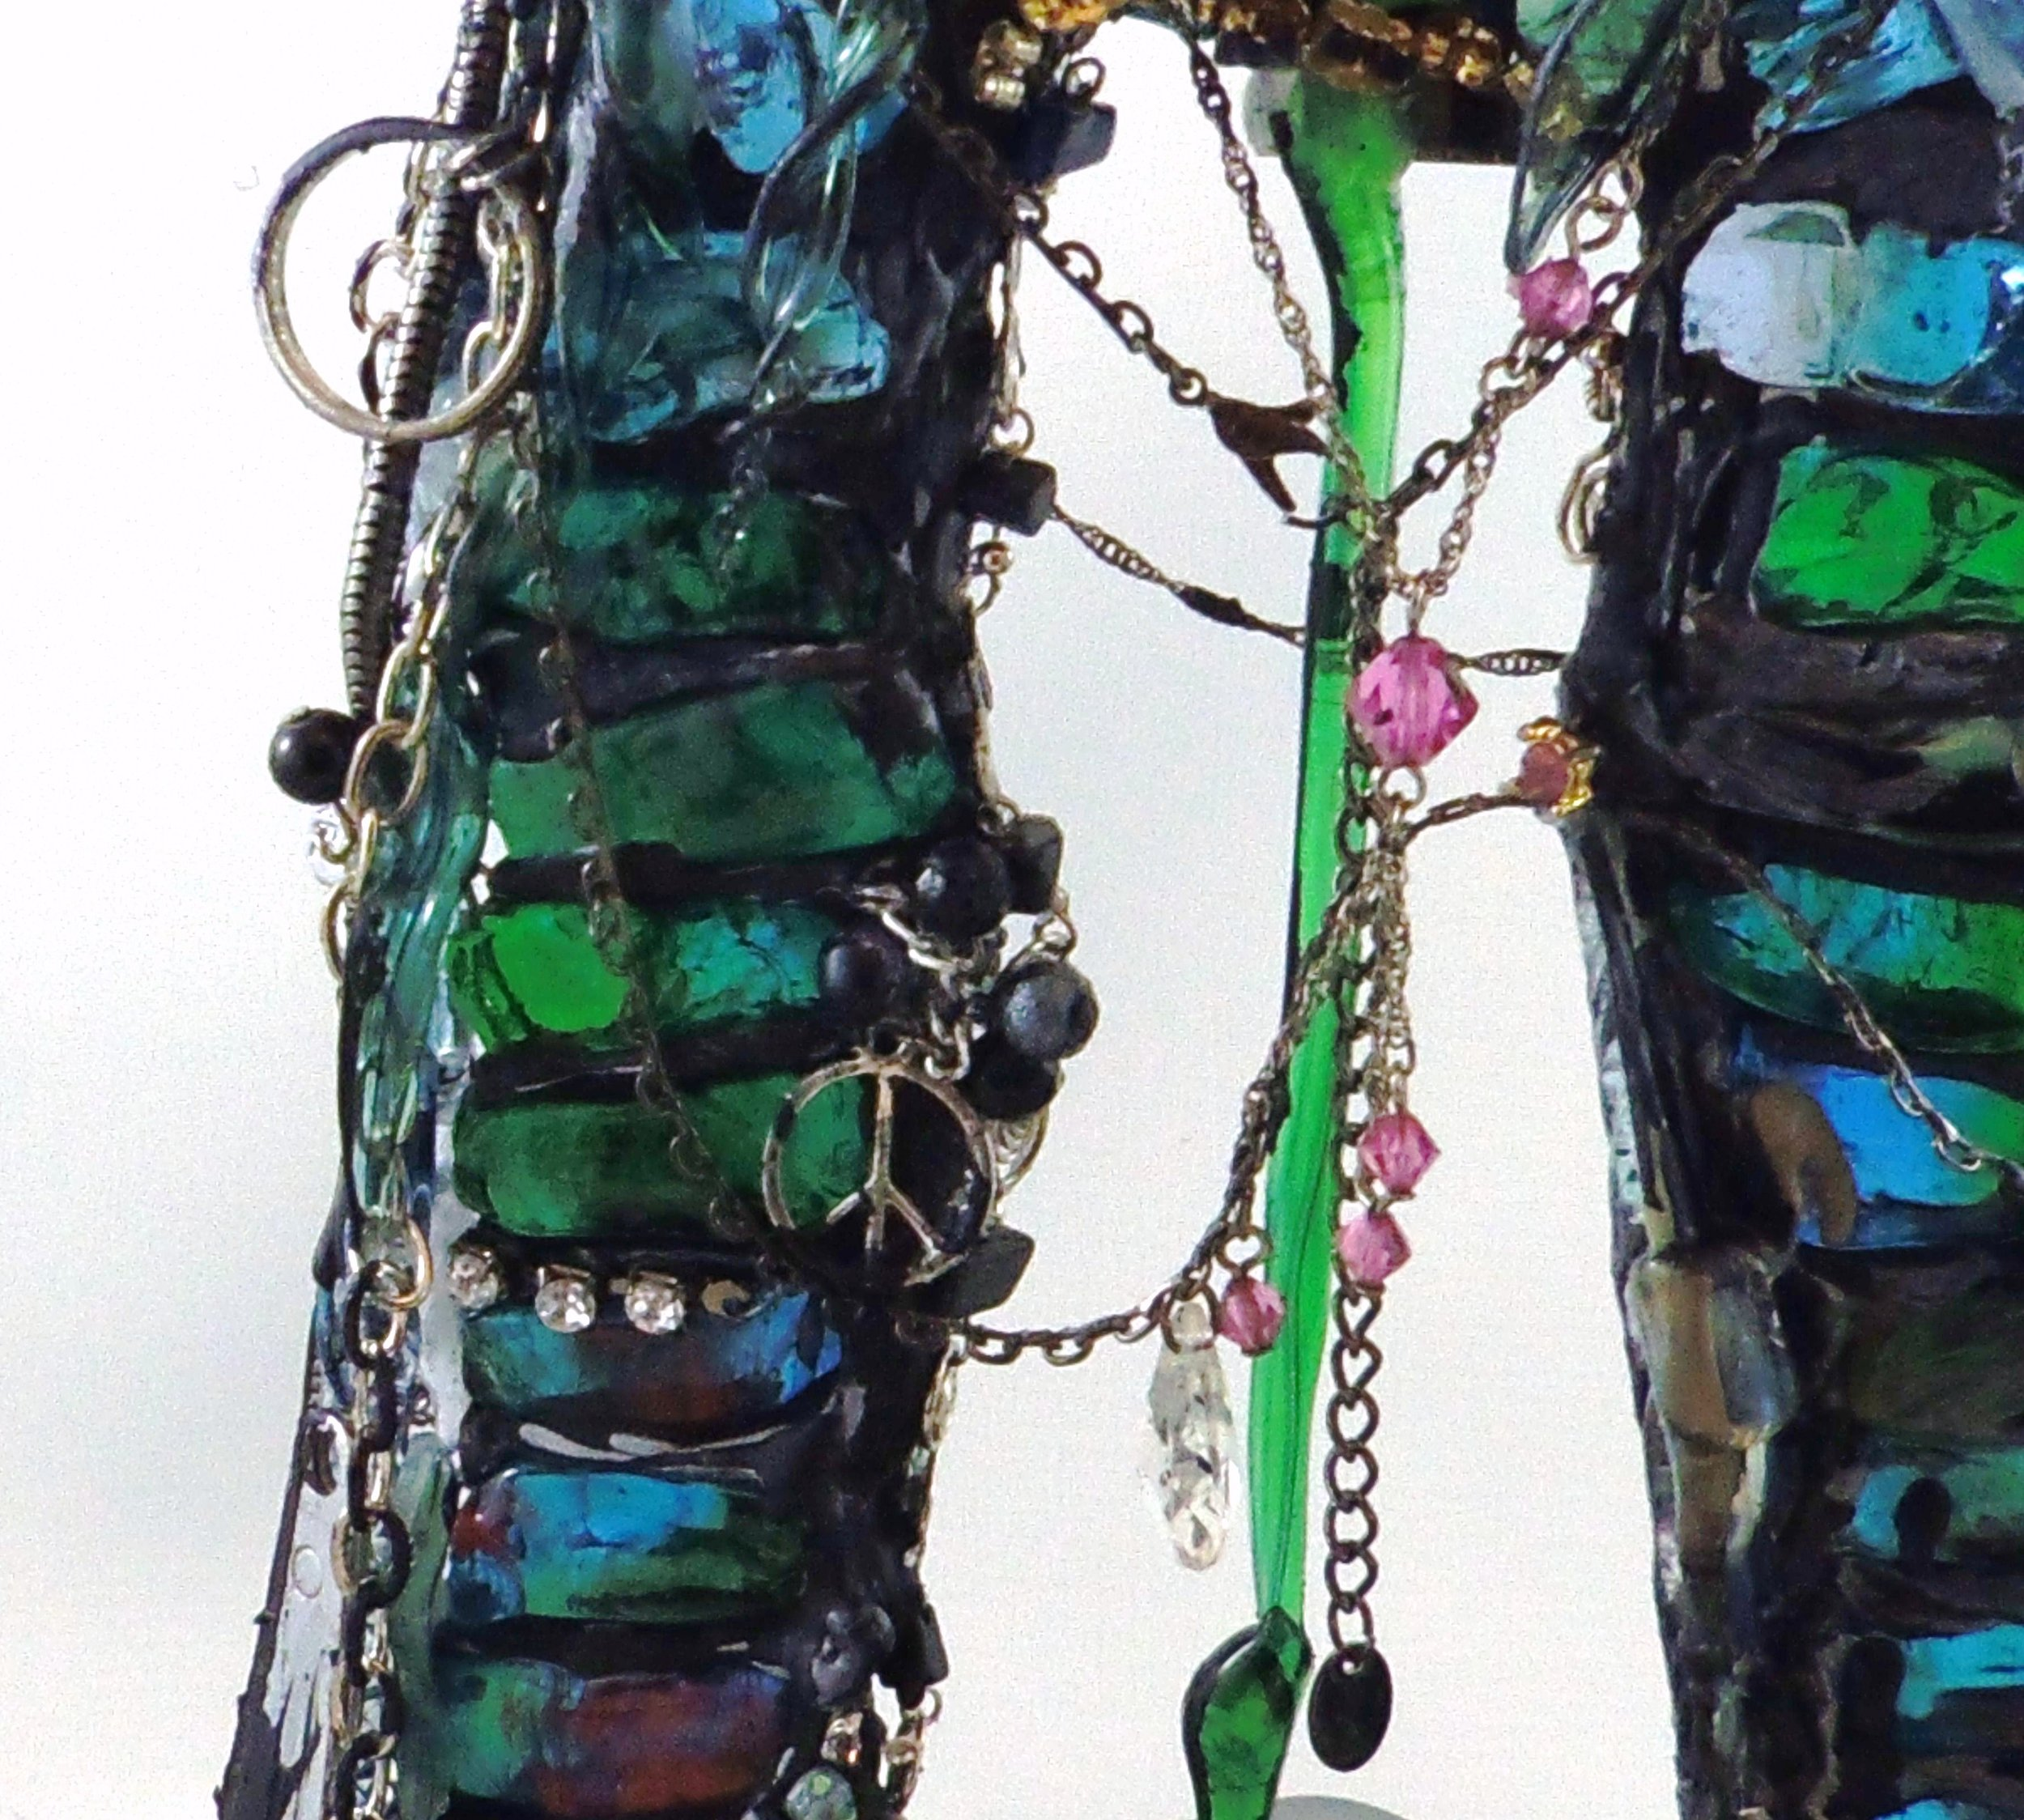 Doorway sculpture made of lampworked glass and found objects